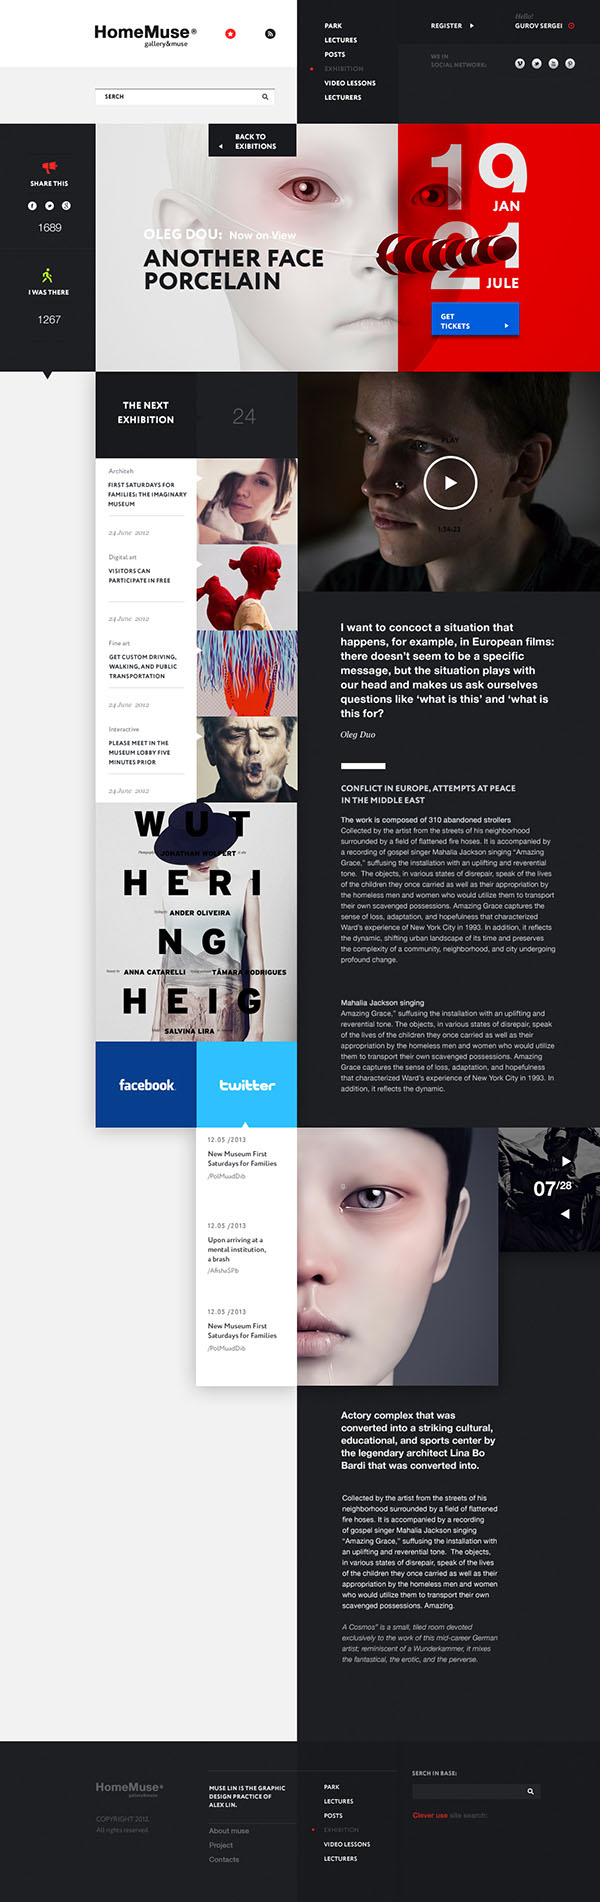 Web Design by Sergei Gurov for HomeMuse Gallery